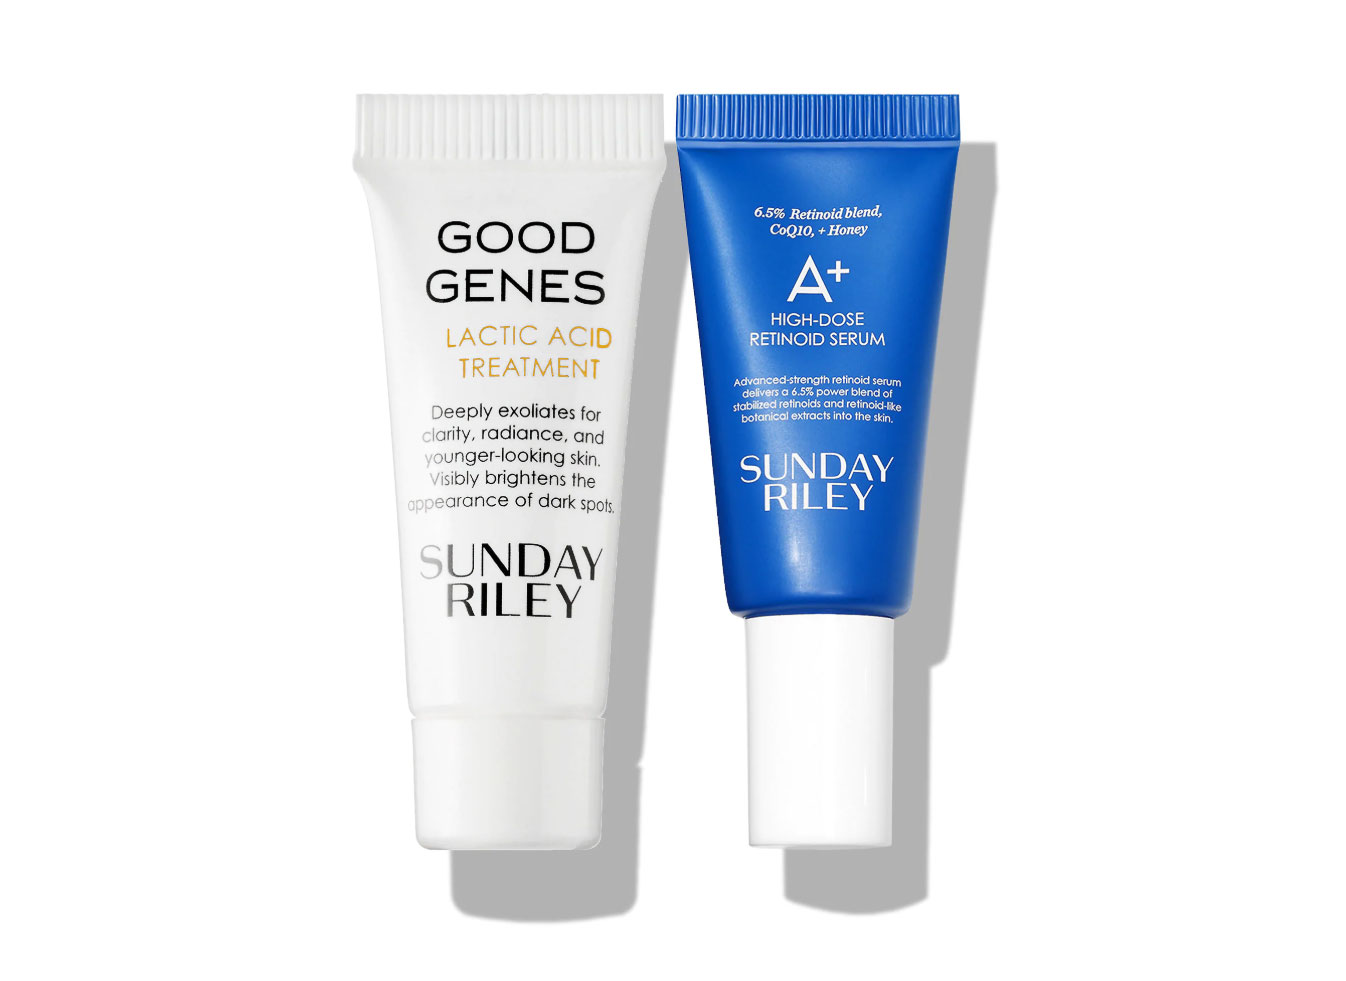 Sunday Riley Good Genes Treatment & A+ High-Dose Retinoid Serum